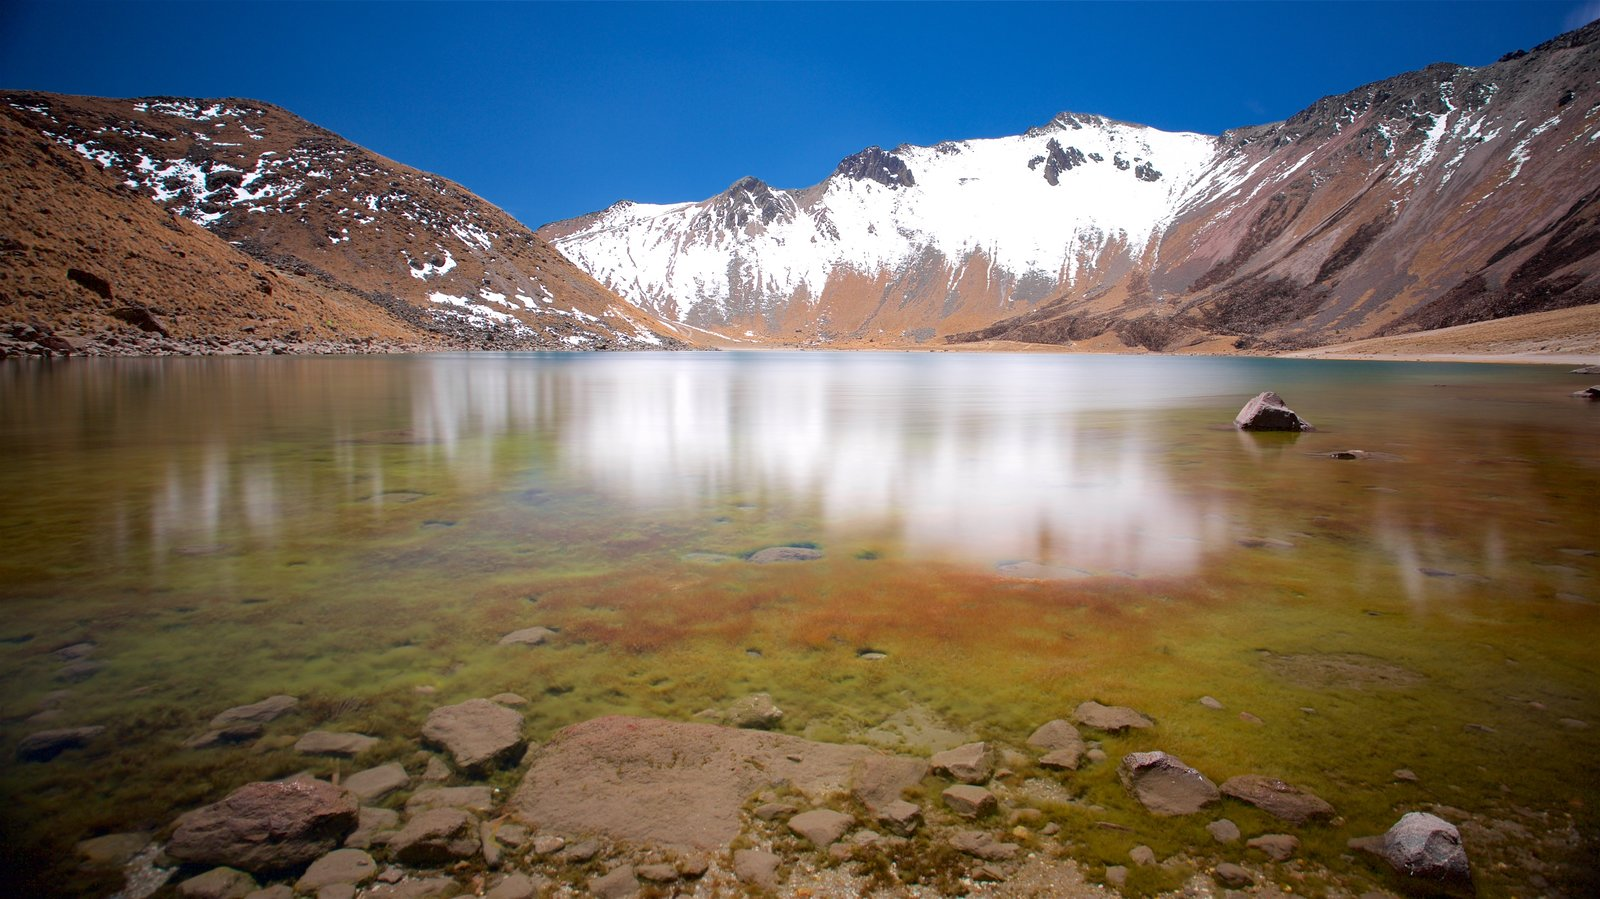 Nevado de Toluca National Park which includes mountains, a lake or waterhole and snow